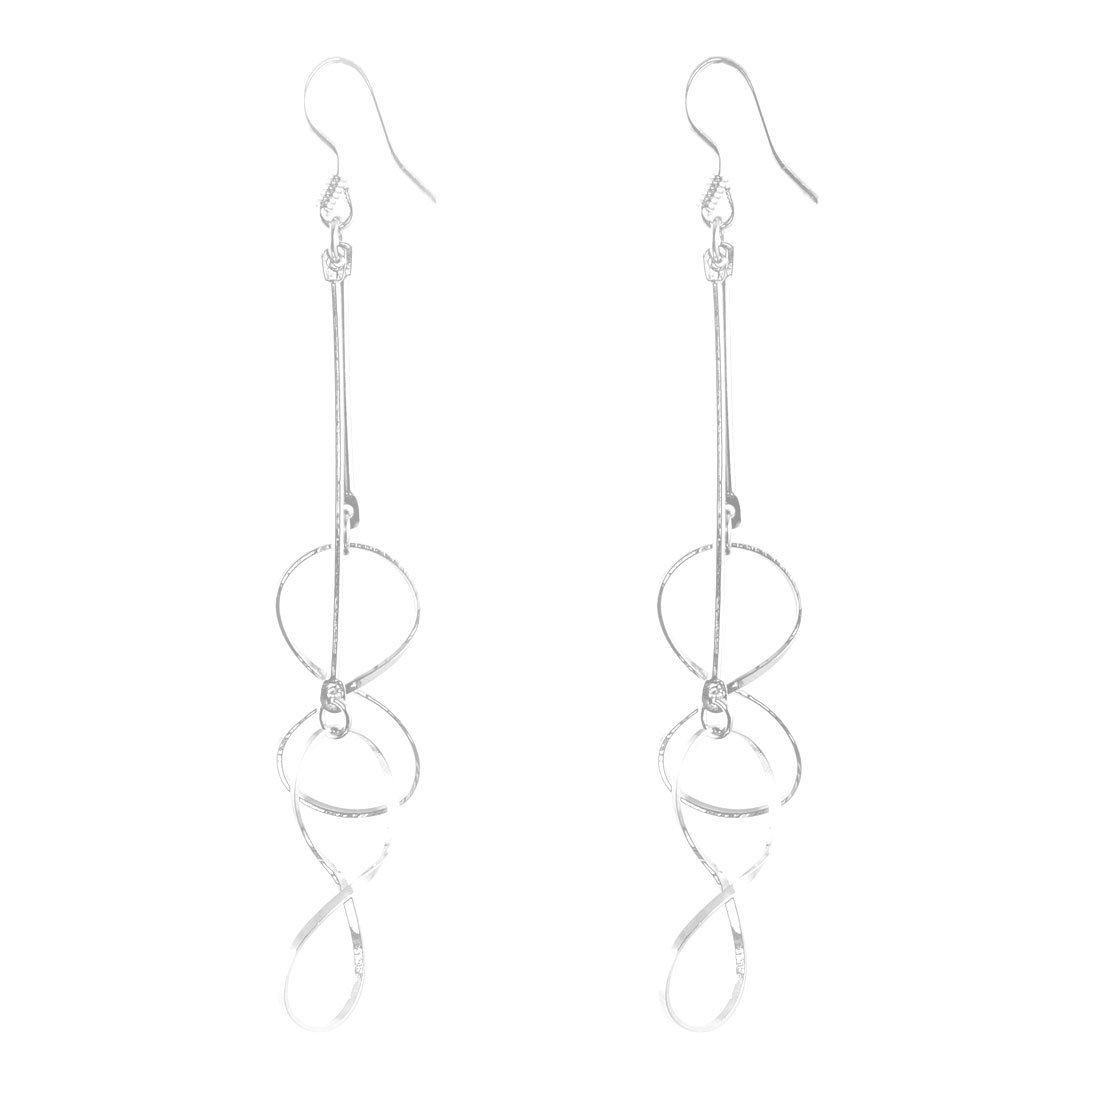 Glistening Silver Tone 8 Shaped Pendant Fish Hook Earrings Pair for Lady